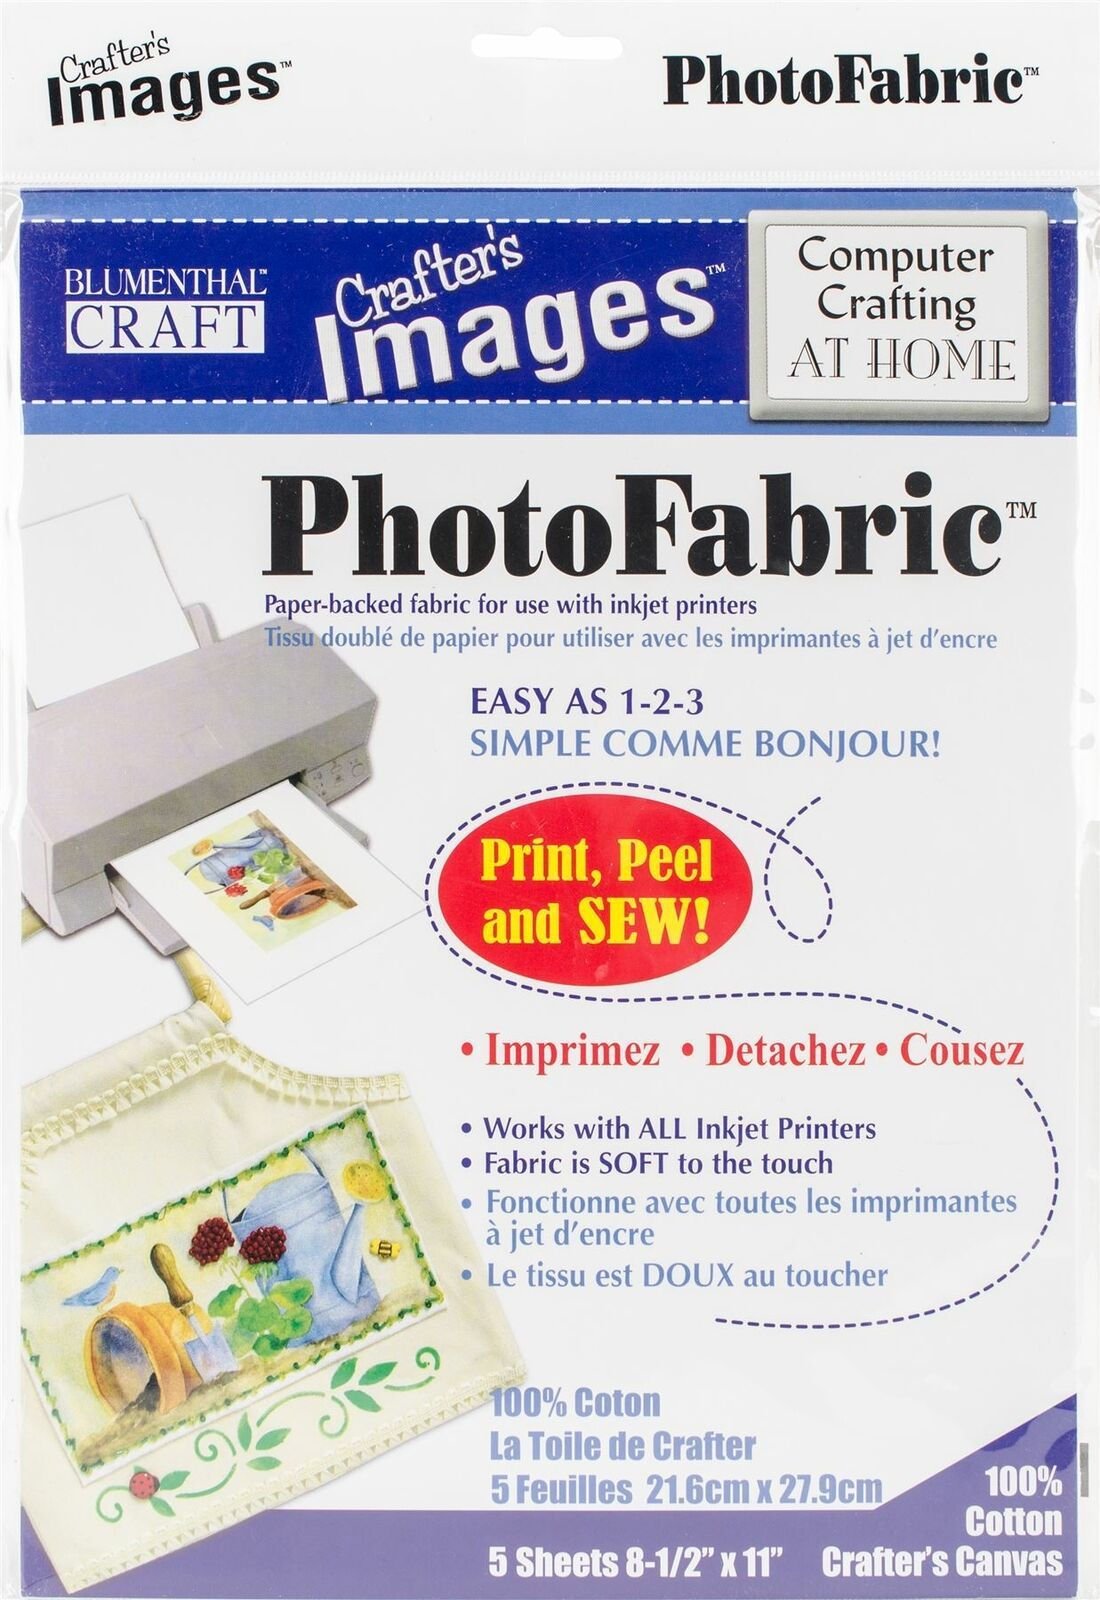 Crafter's Images Sew-In Photo fabric 8.5